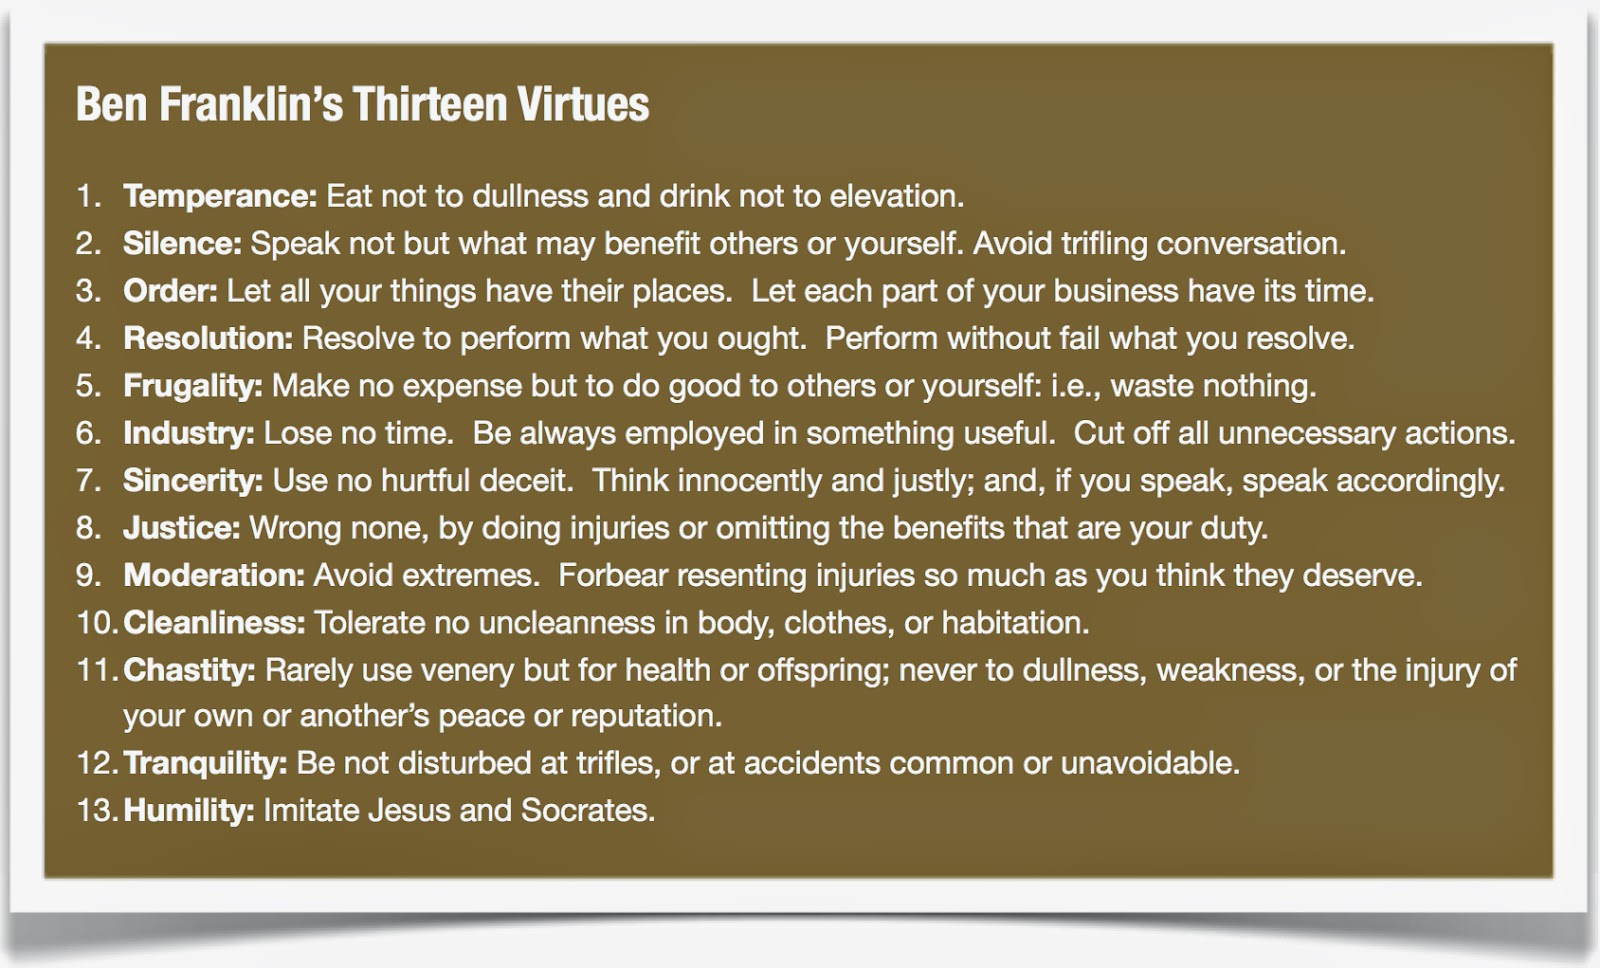 Ethics and virtues: Benjamin Franklin's method